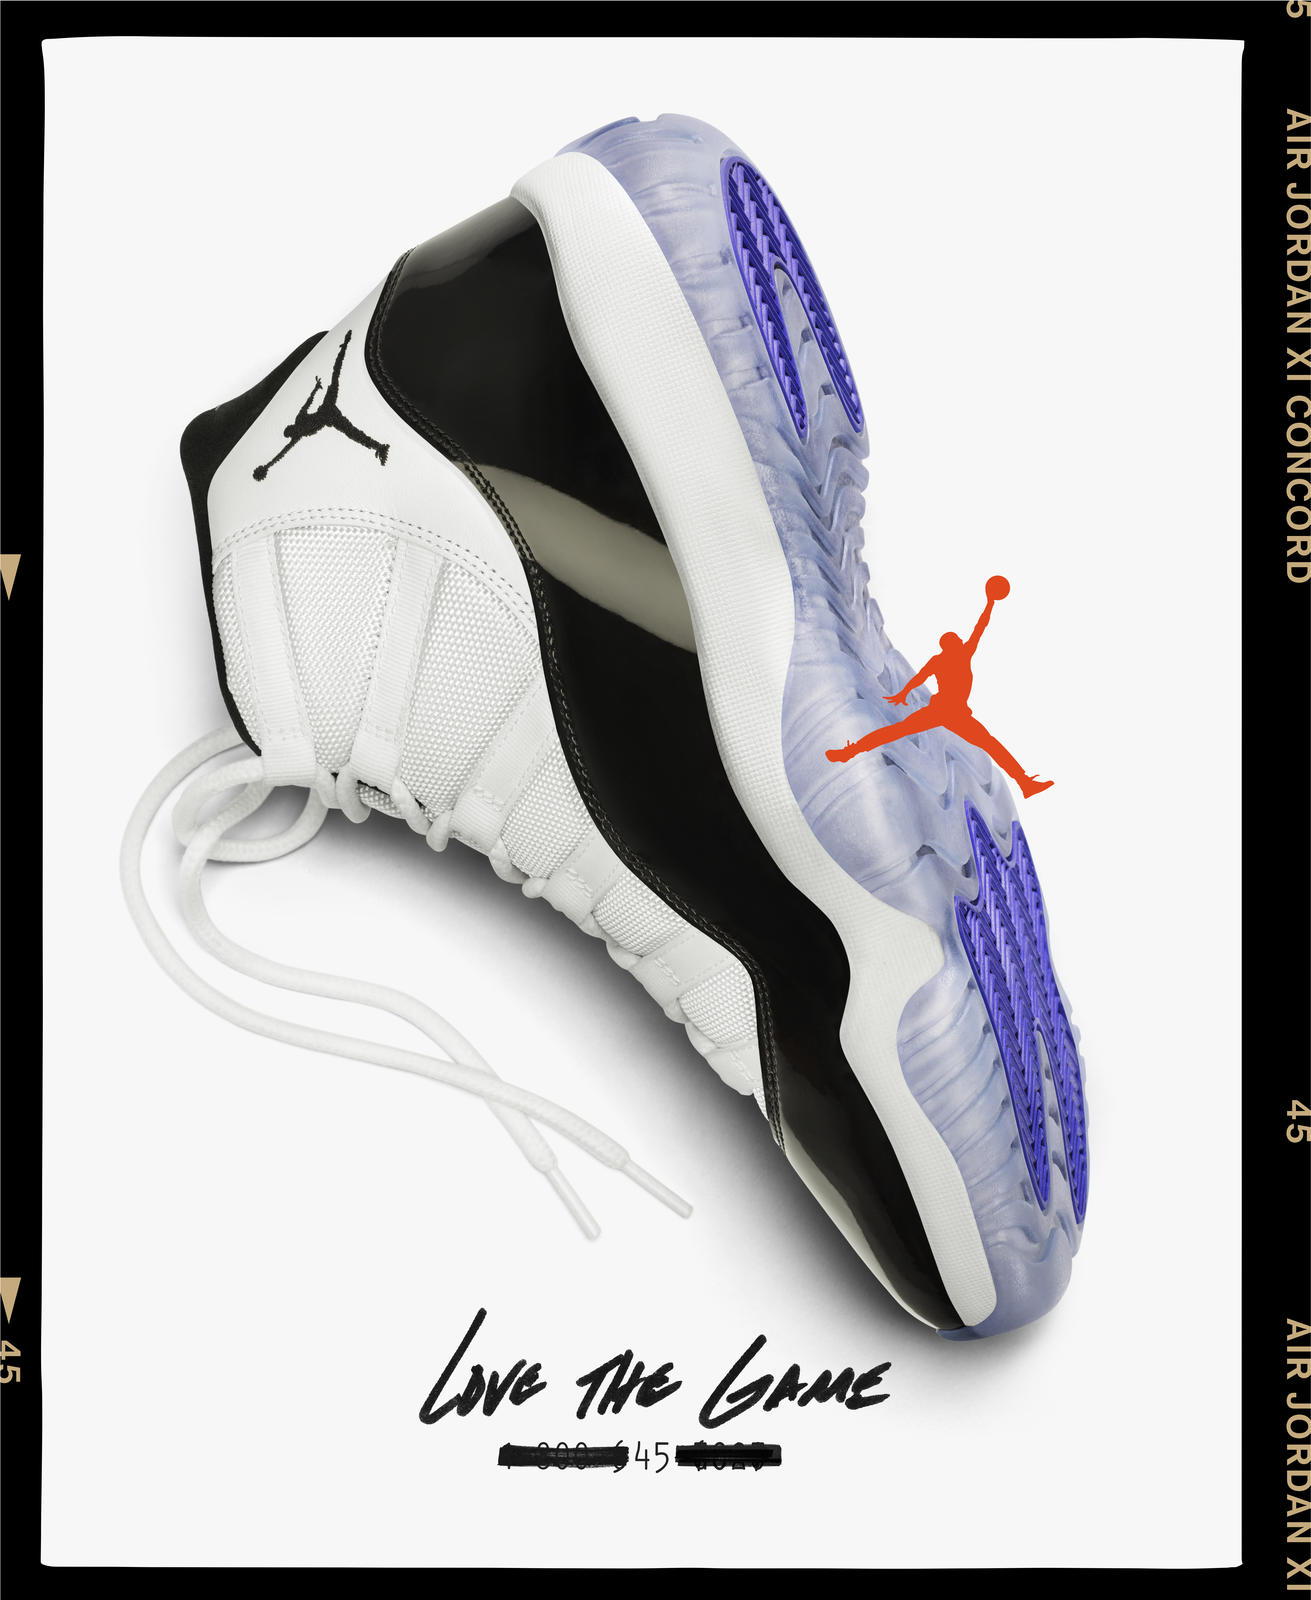 timeless design fb9de e464b The Story of the Grail: The Air Jordan XI Concord ...